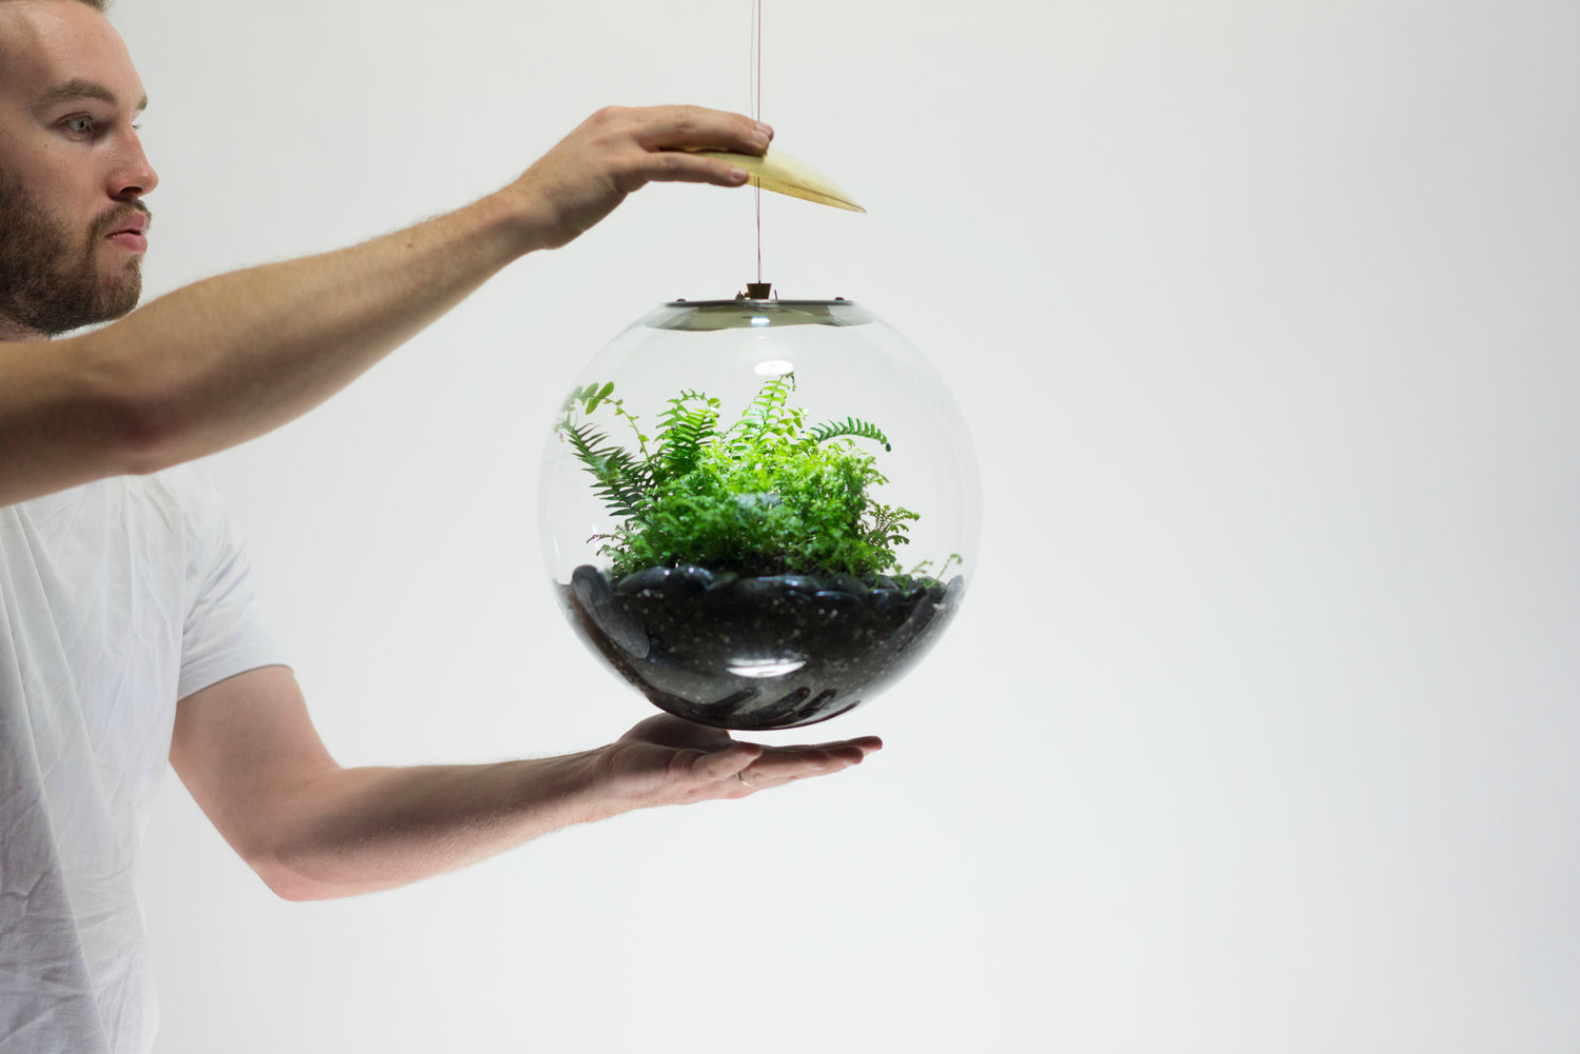 Terrarium Lamps Grow Plants